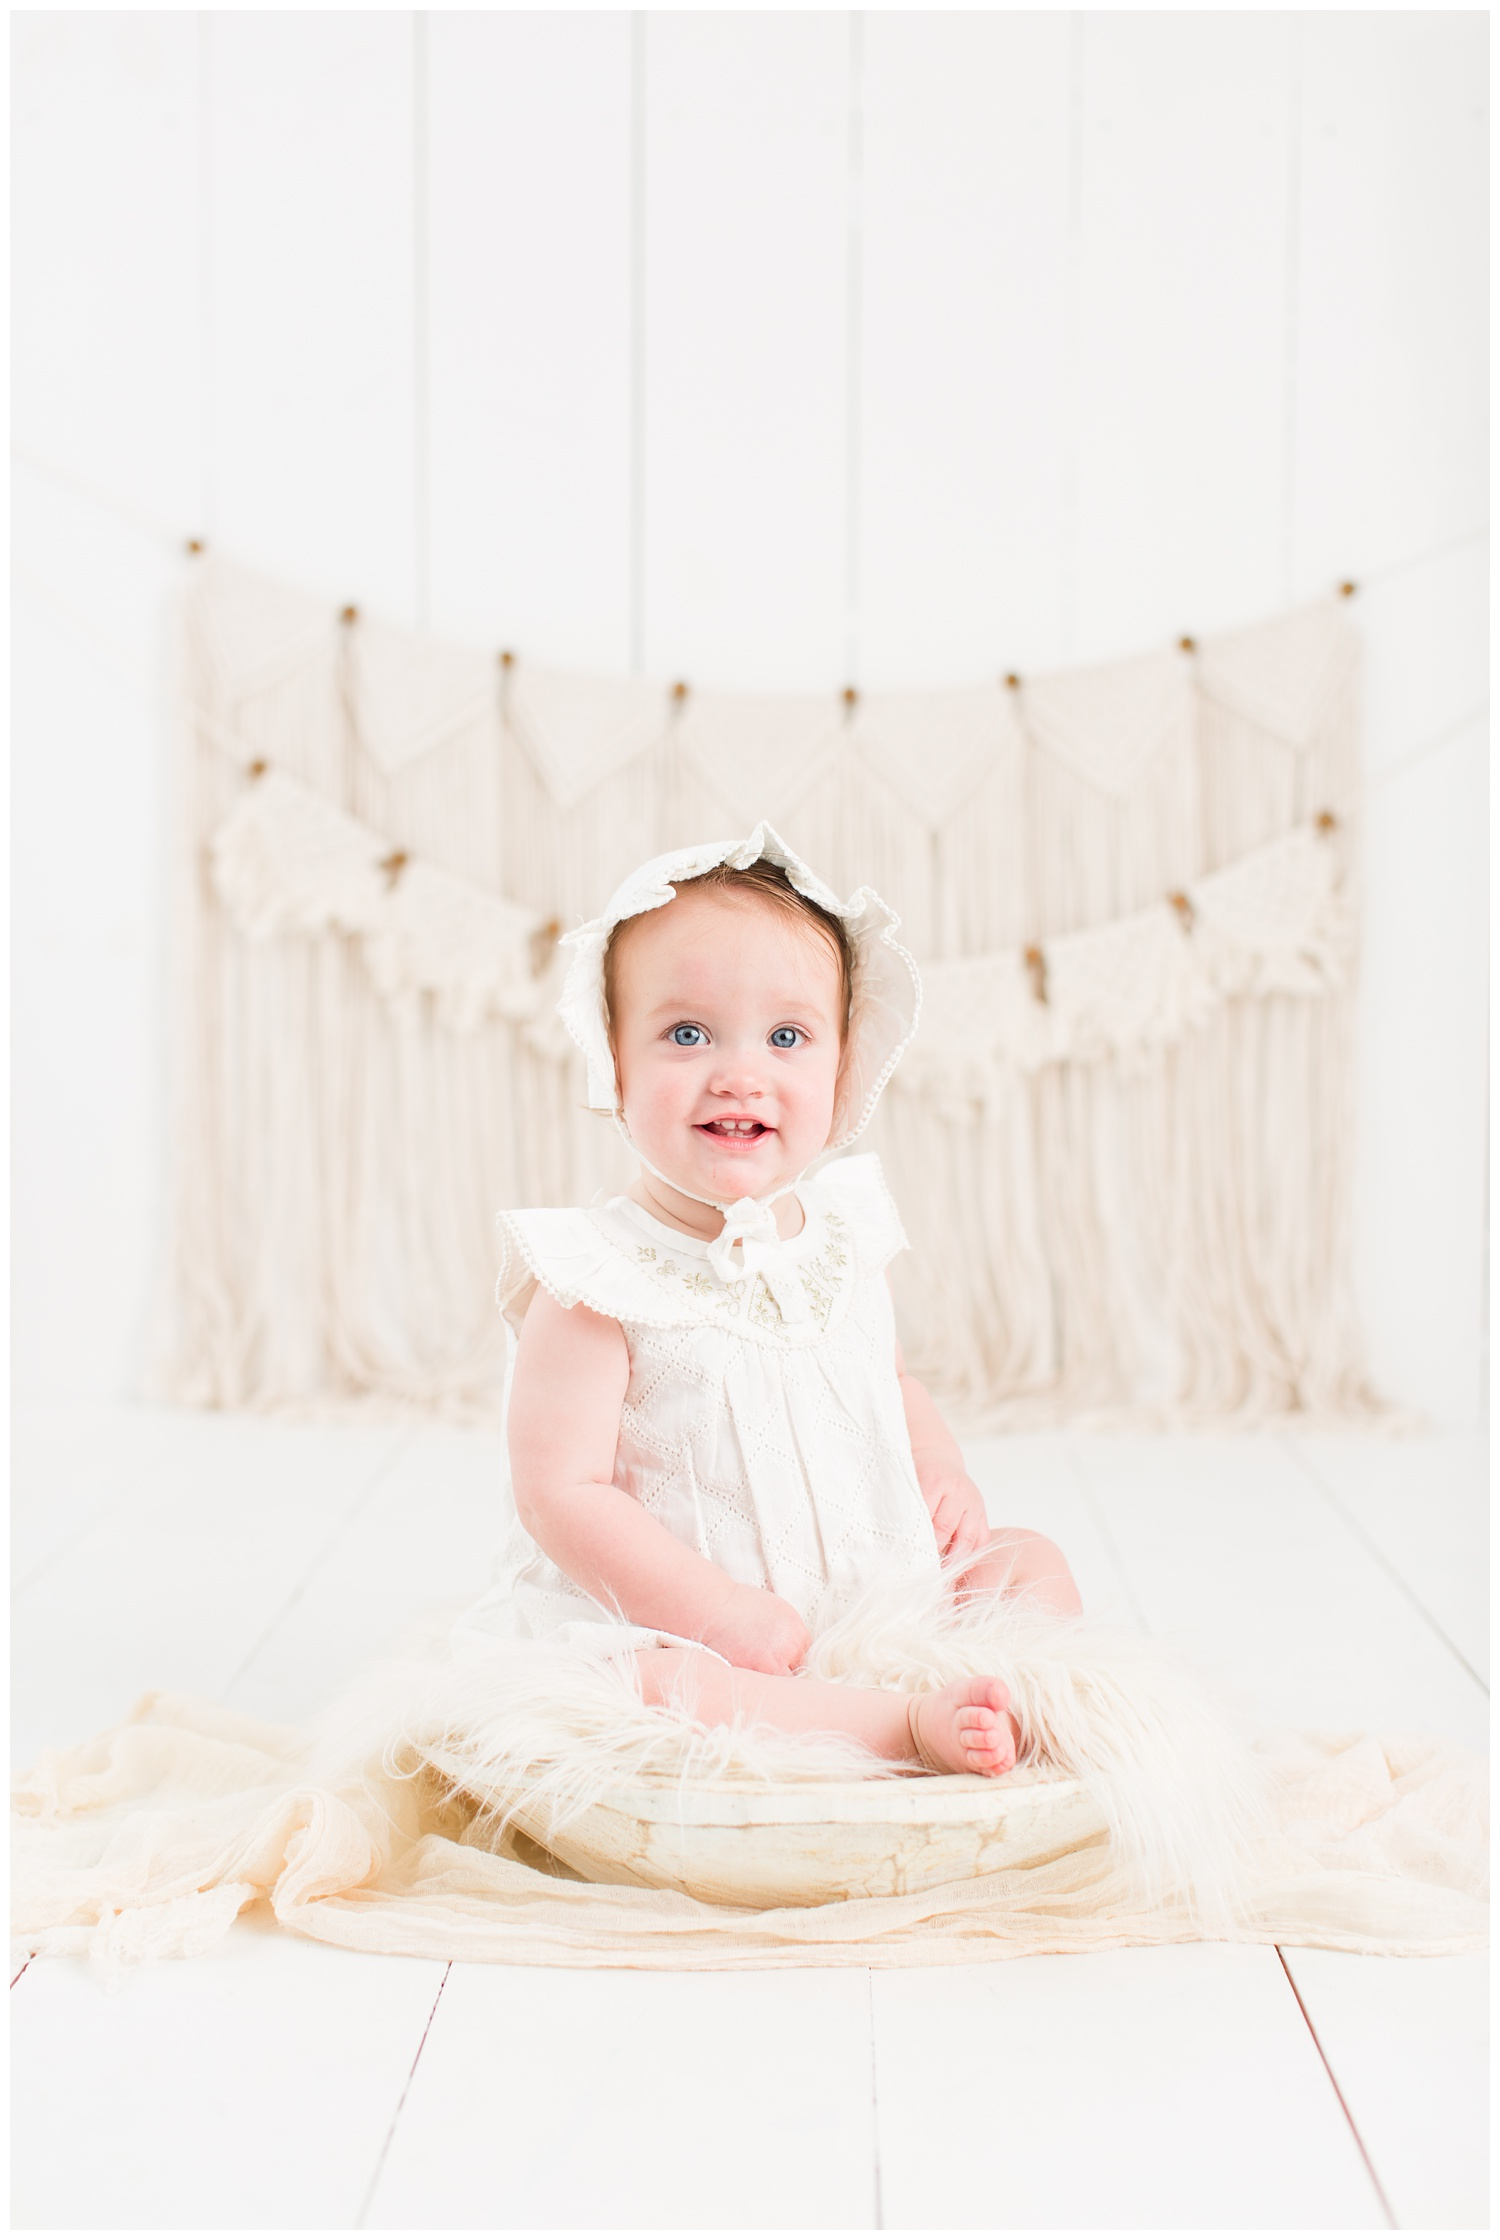 Baby Cara dressed in a vintage white romper and bonnet sitting in a rustic cream bowl with a boho macrame background | CB Studio